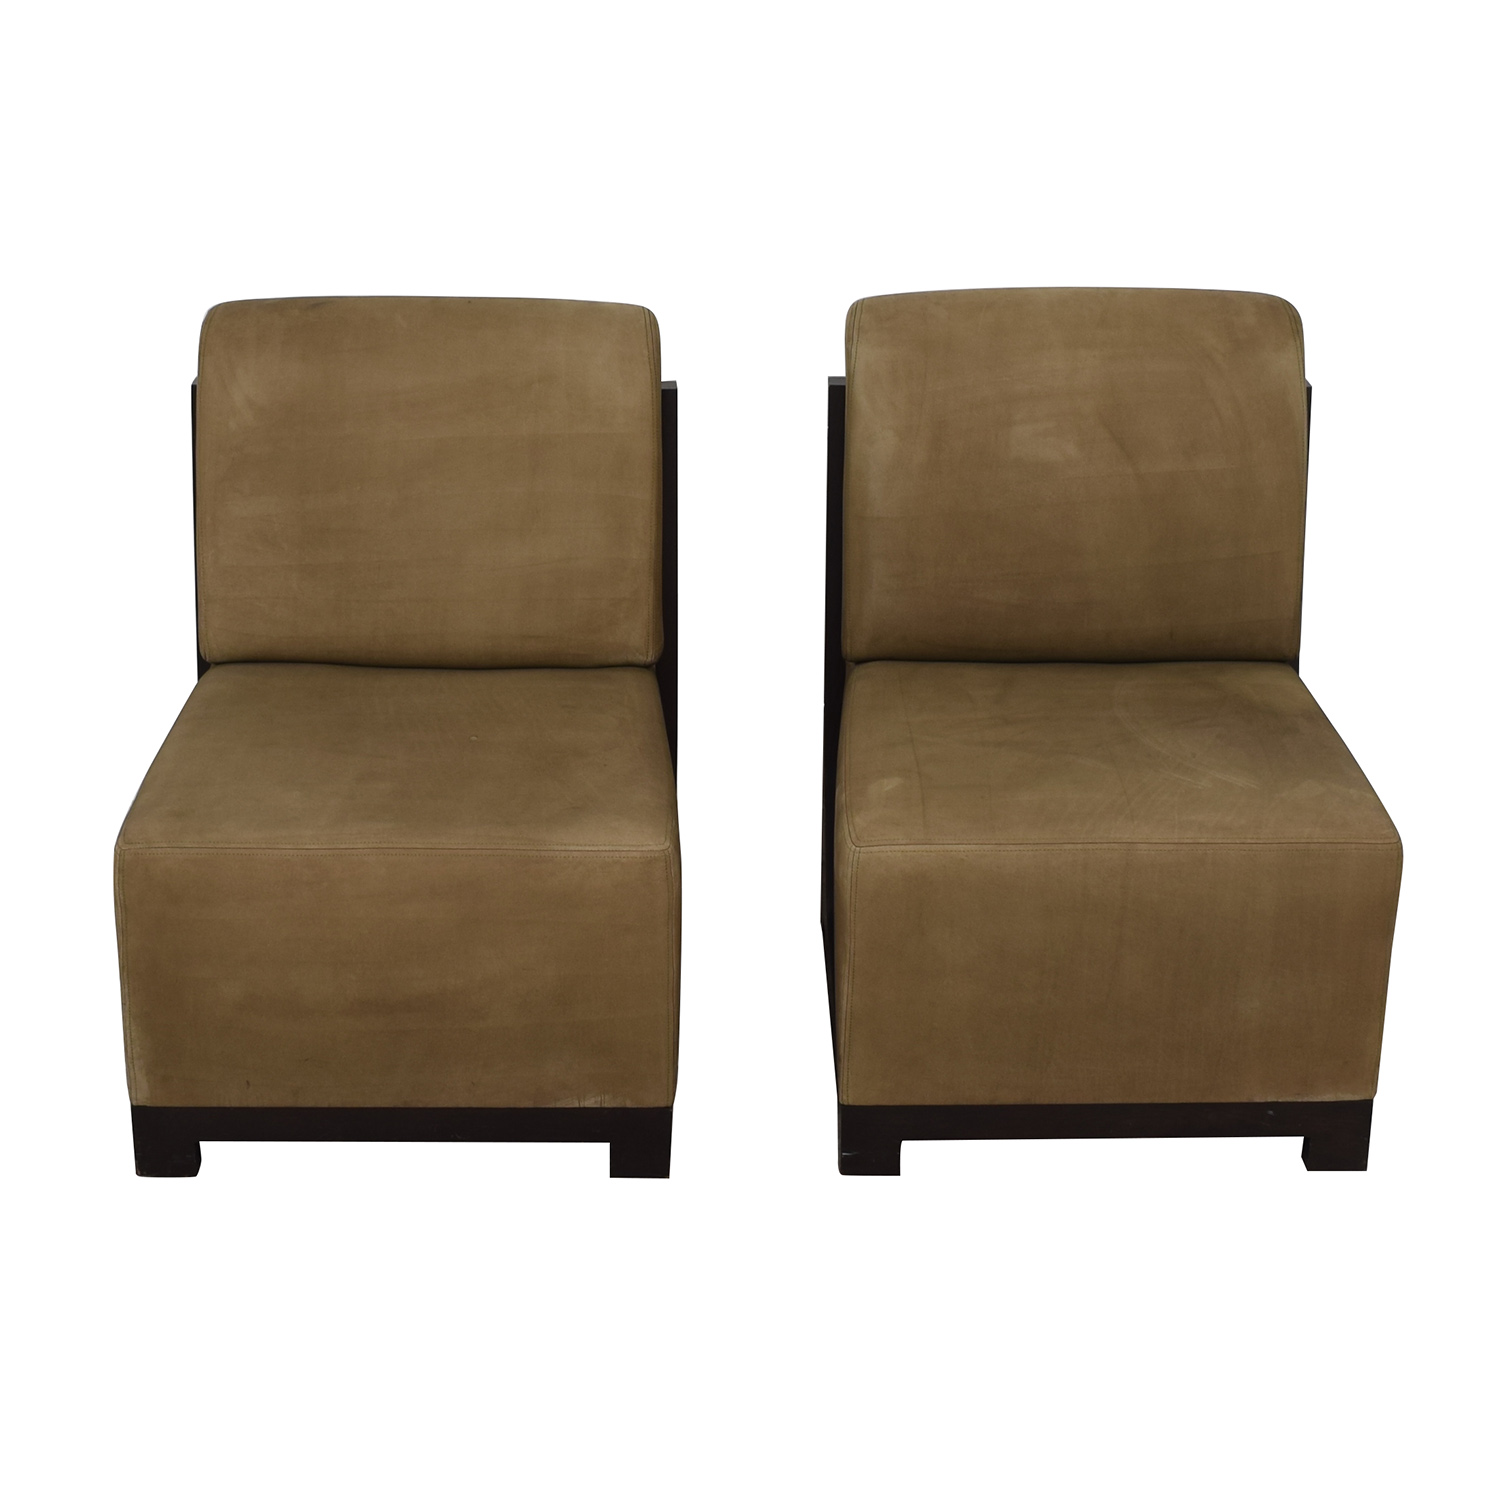 Furniture Masters Furniture Masters Tan Accent Chairs on sale